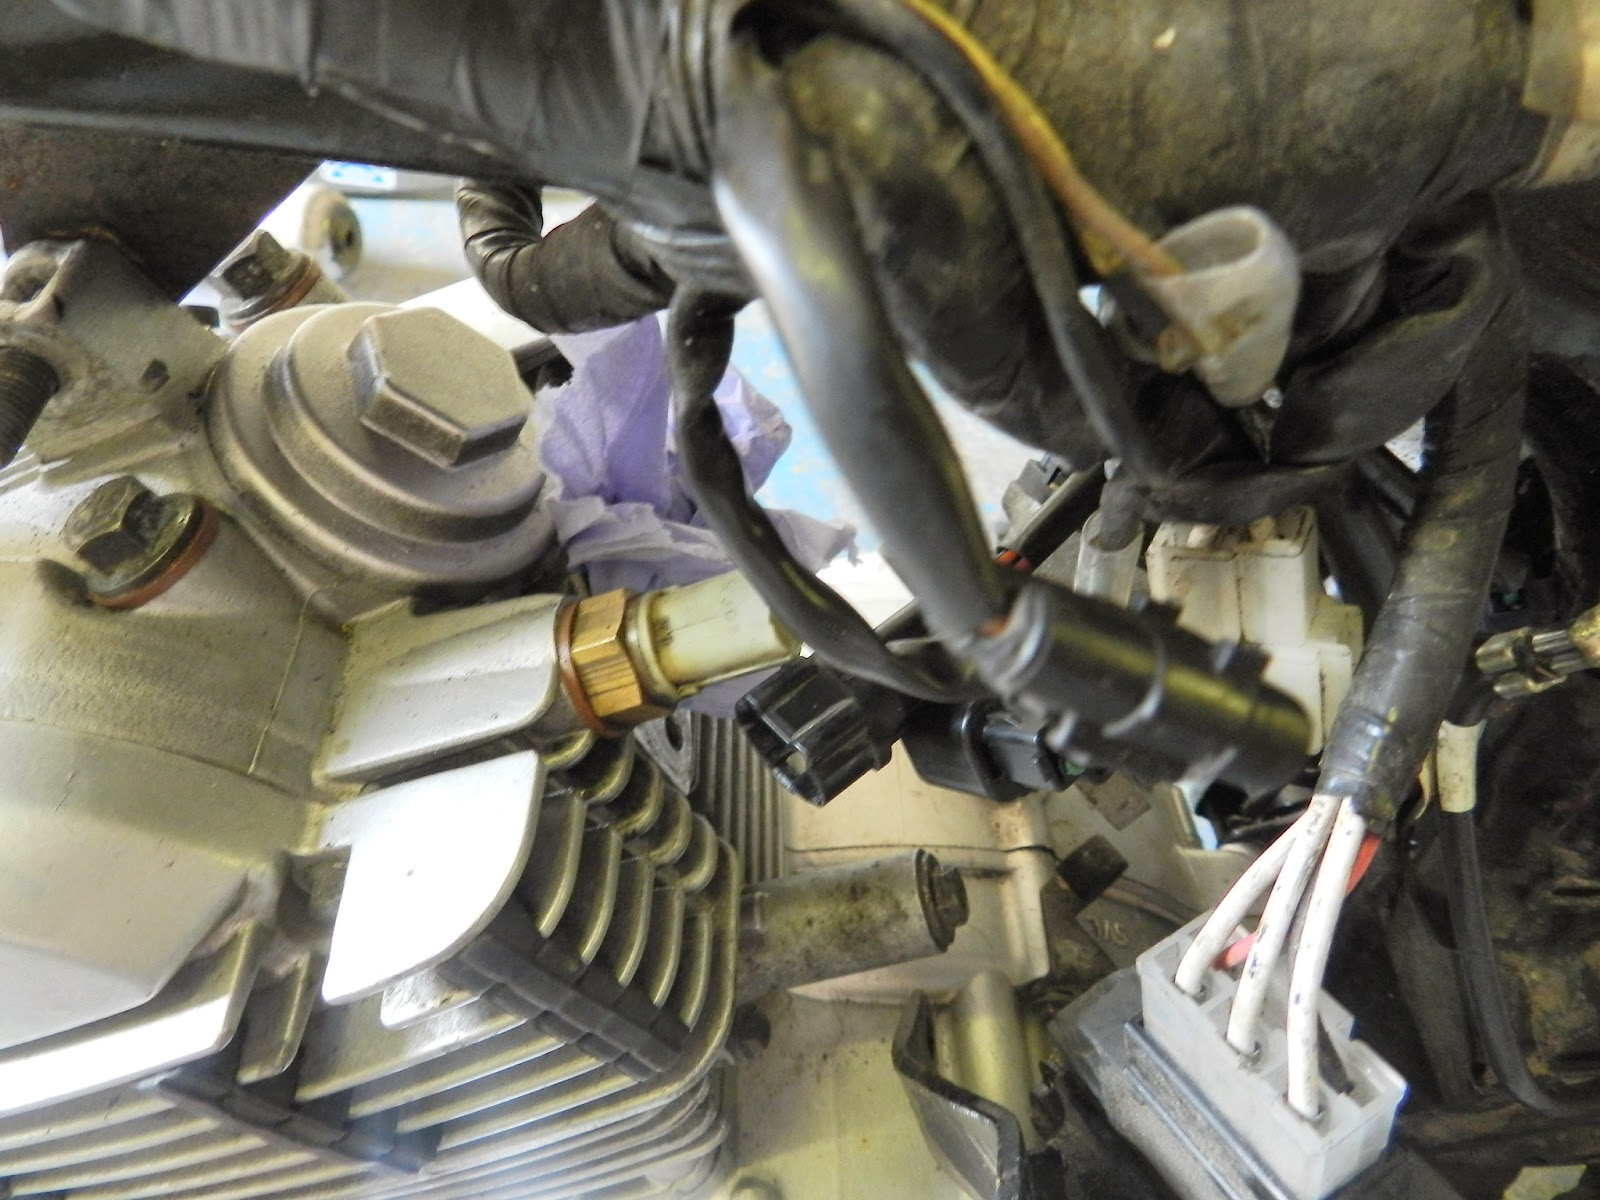 Yamaha YBR 125 Owner Blog : Yamaha YBR 125 Engine removal